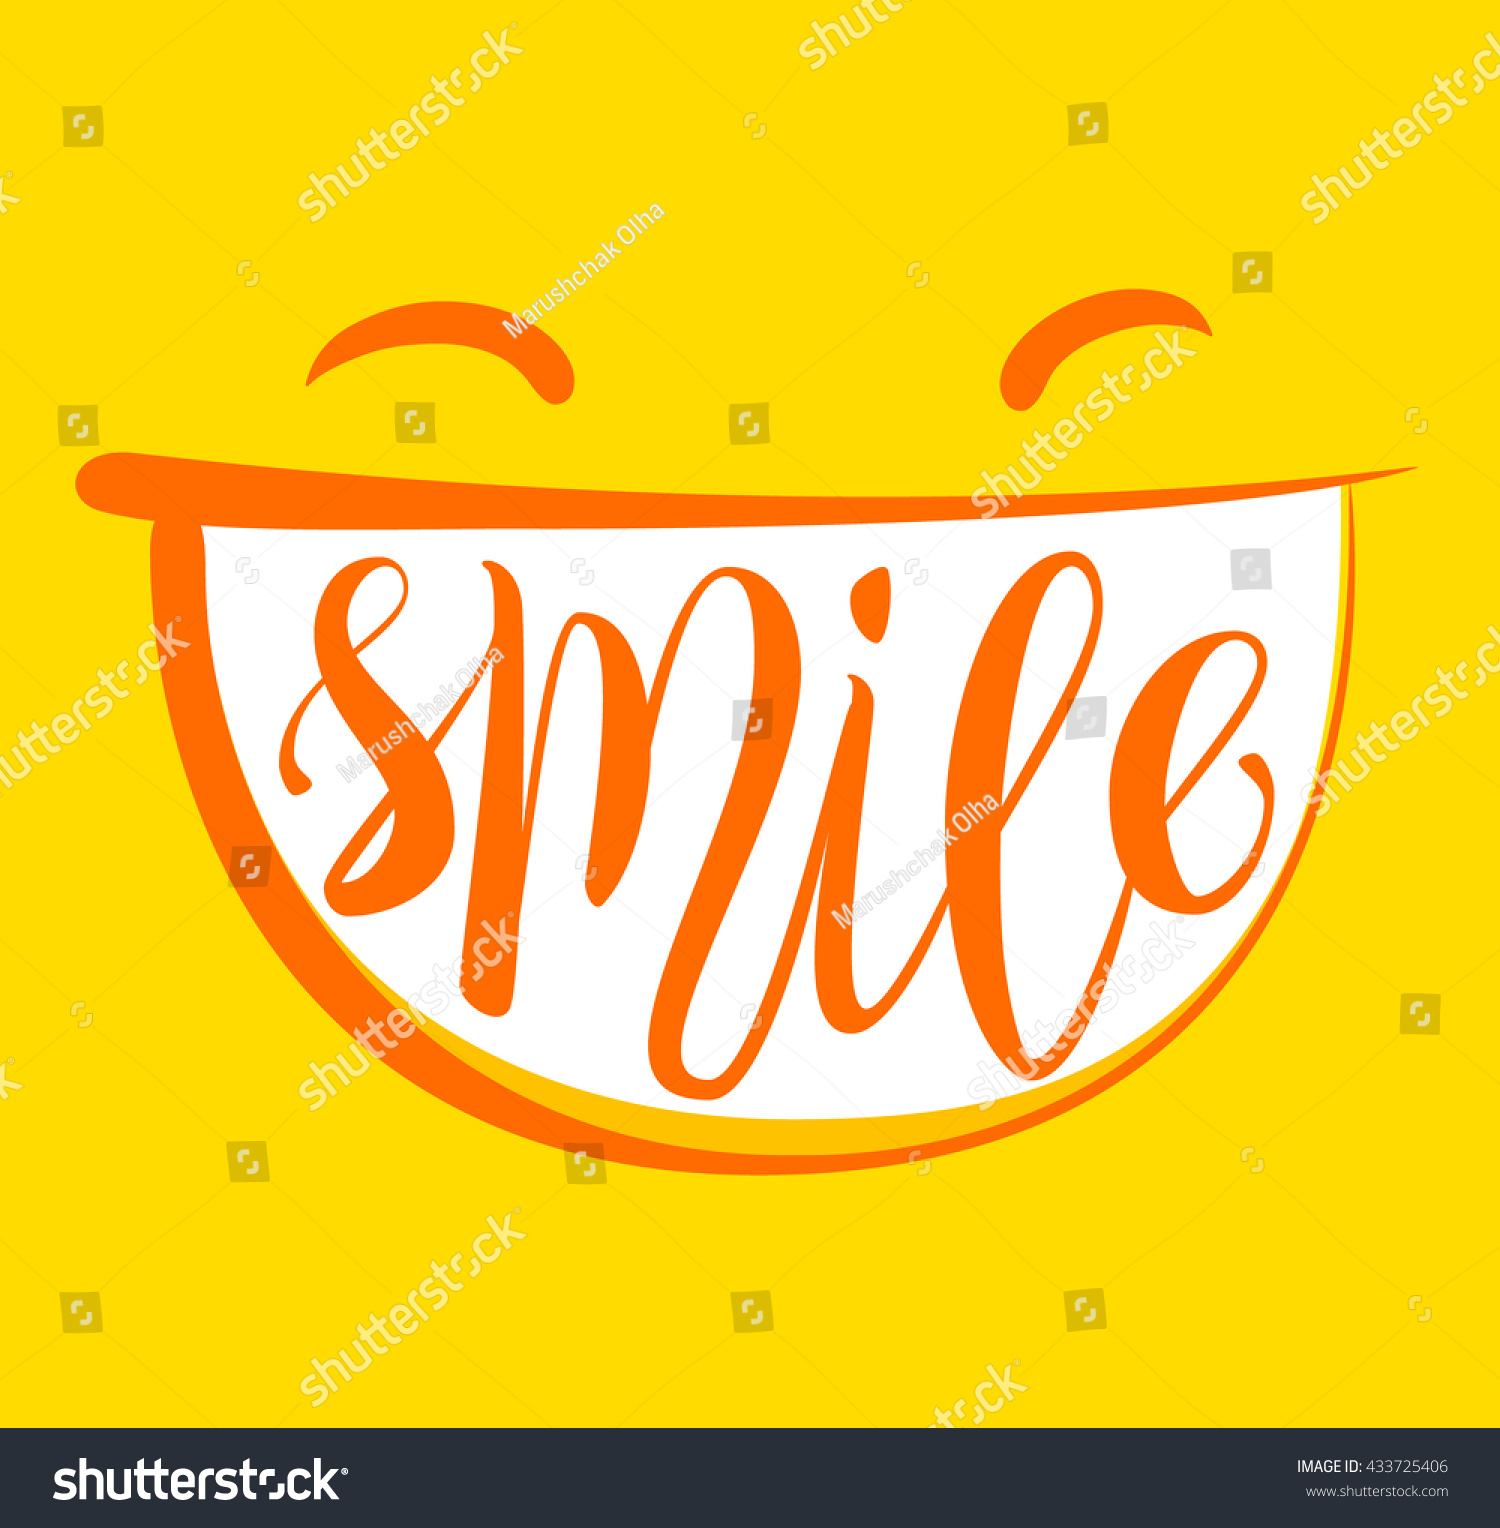 Yellow Positive Thinking Smile Poster Smile Stock Vector 433725406 ...